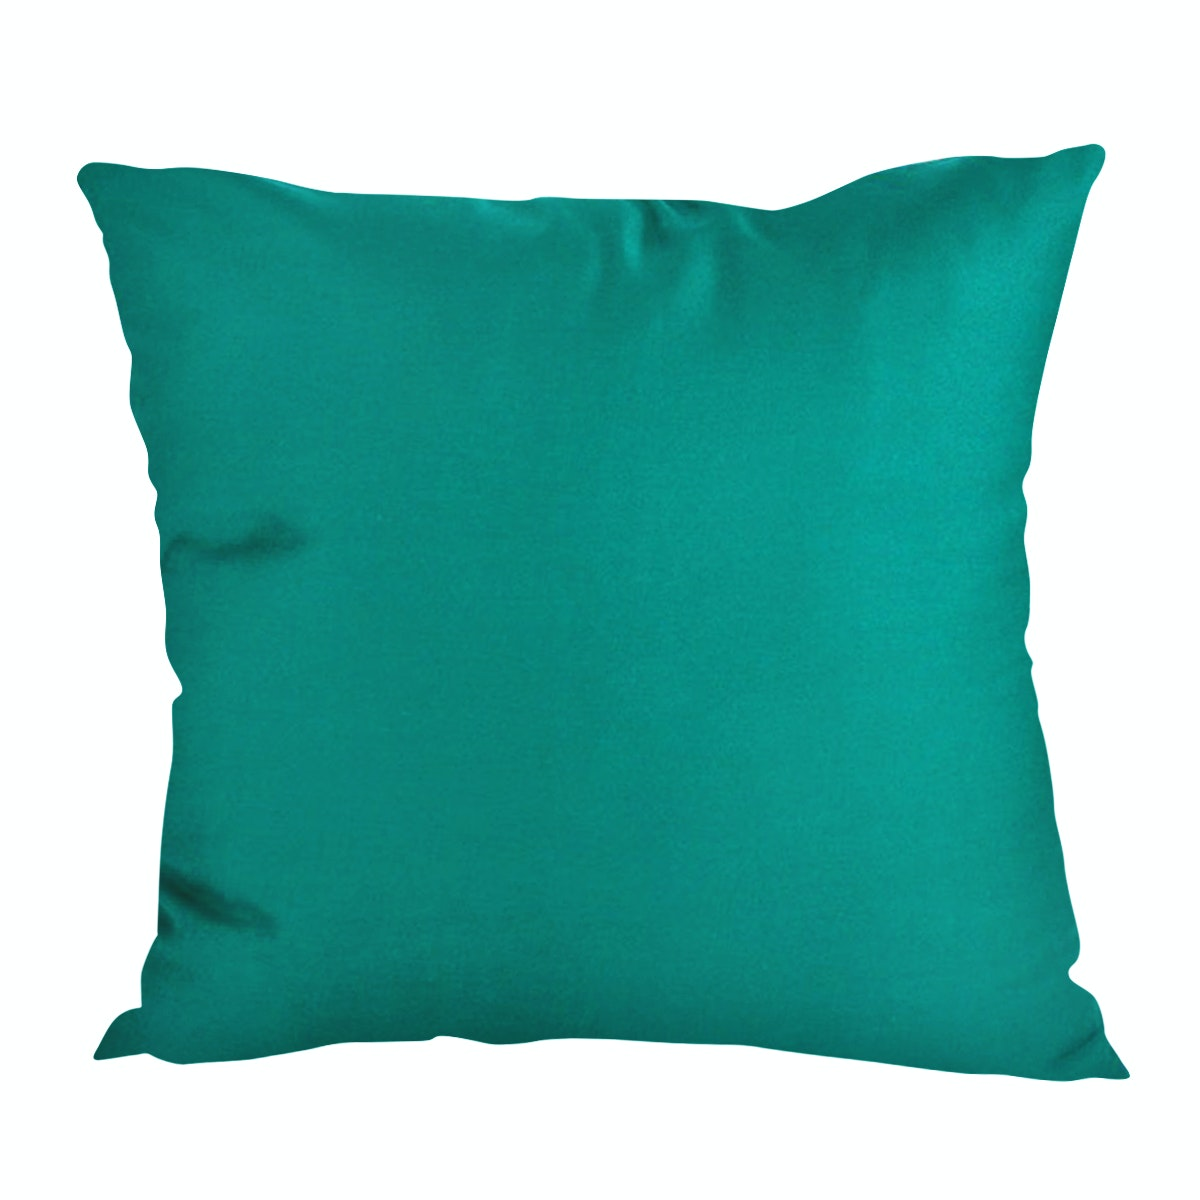 Glerry Home Decor Rainforest Cushion 40x40cm